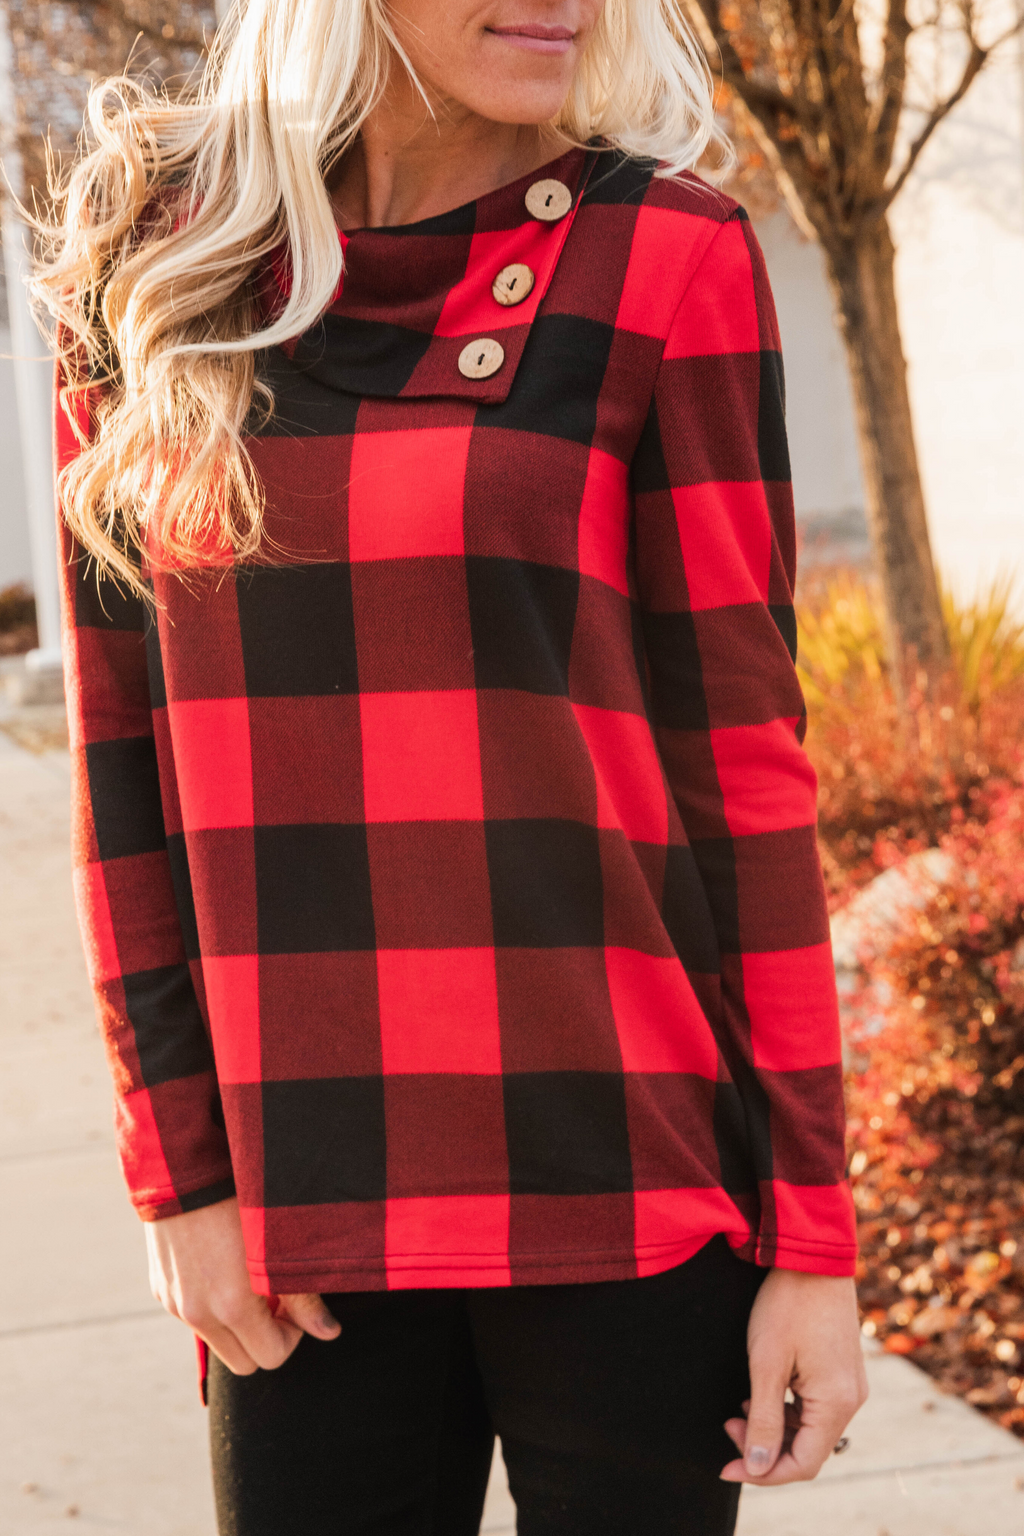 Emilia Buffalo Plaid Top